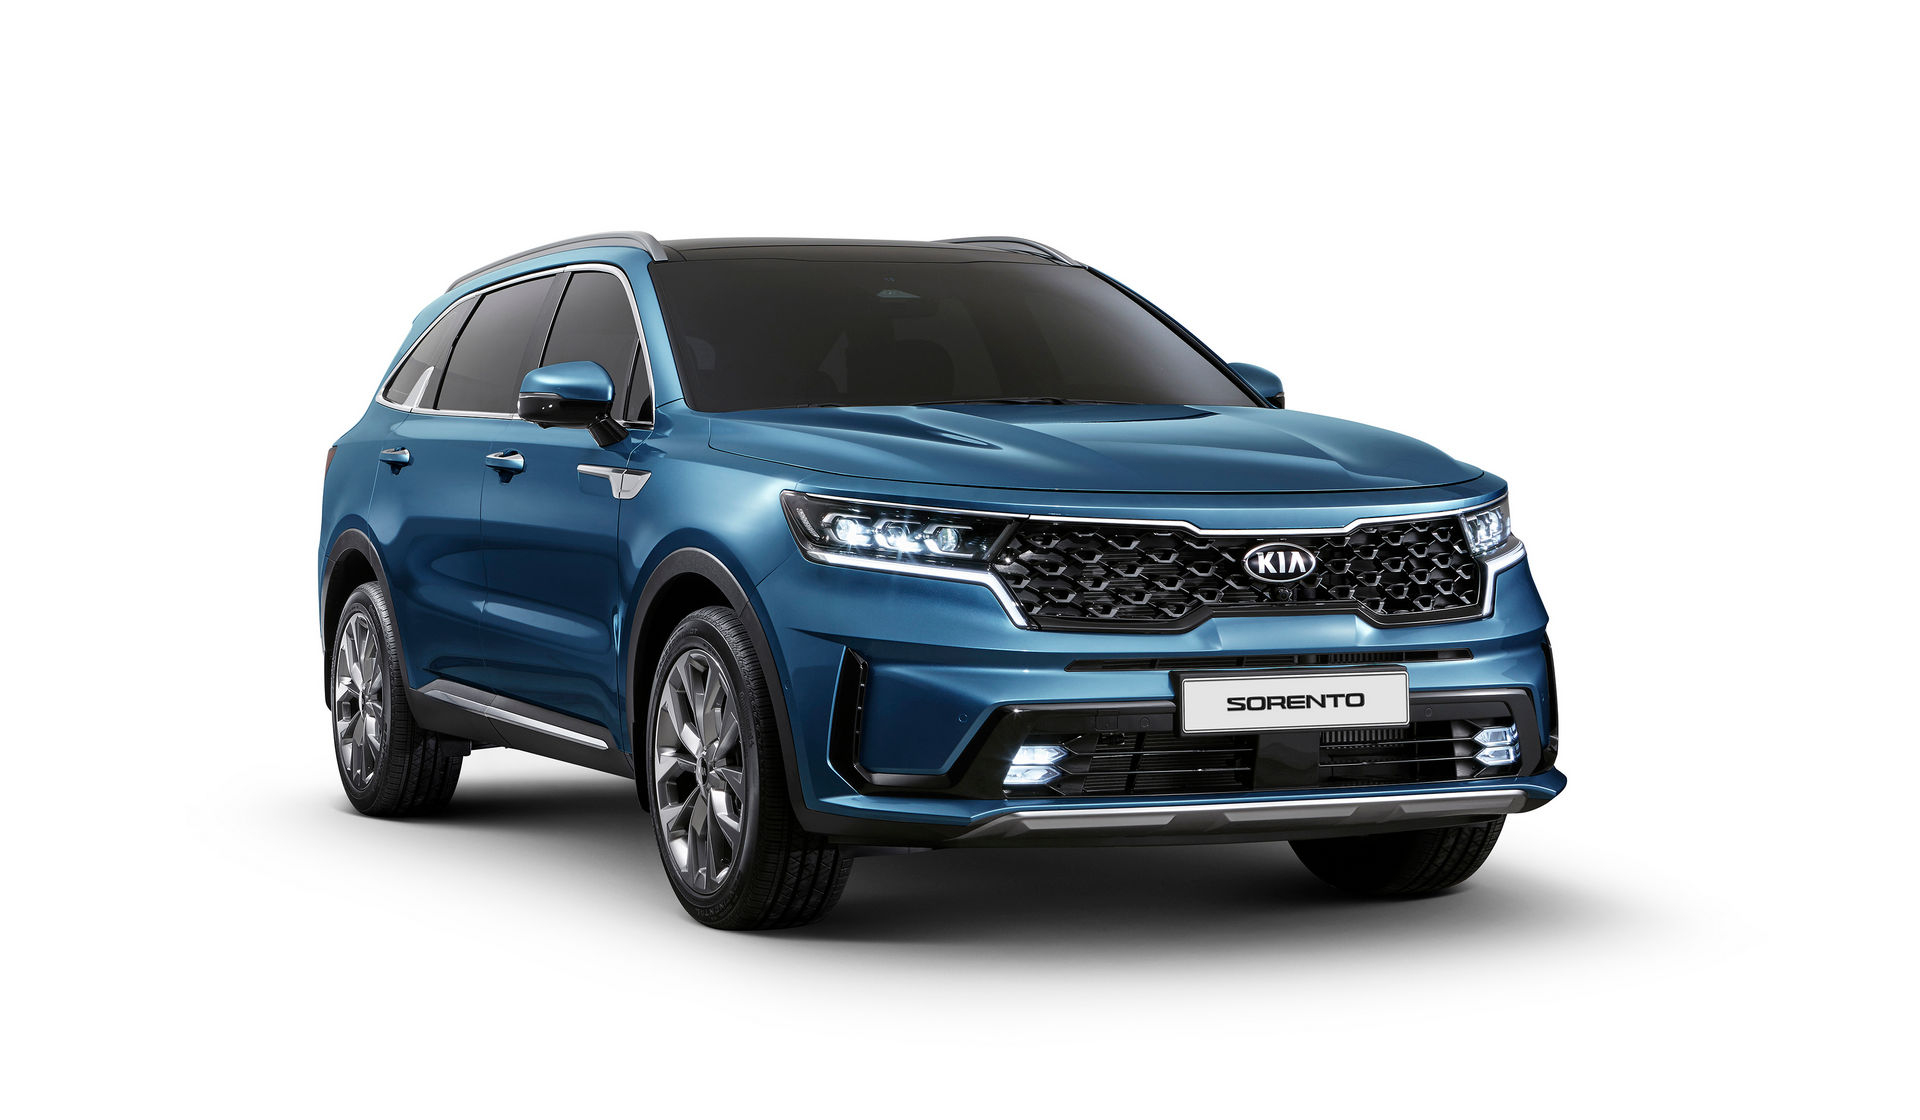 2021 Kia Sorento: Here Are The First Official Images And Details - 2022 Kia Niro Safety Rating Rumor Release, Specs, Redesign